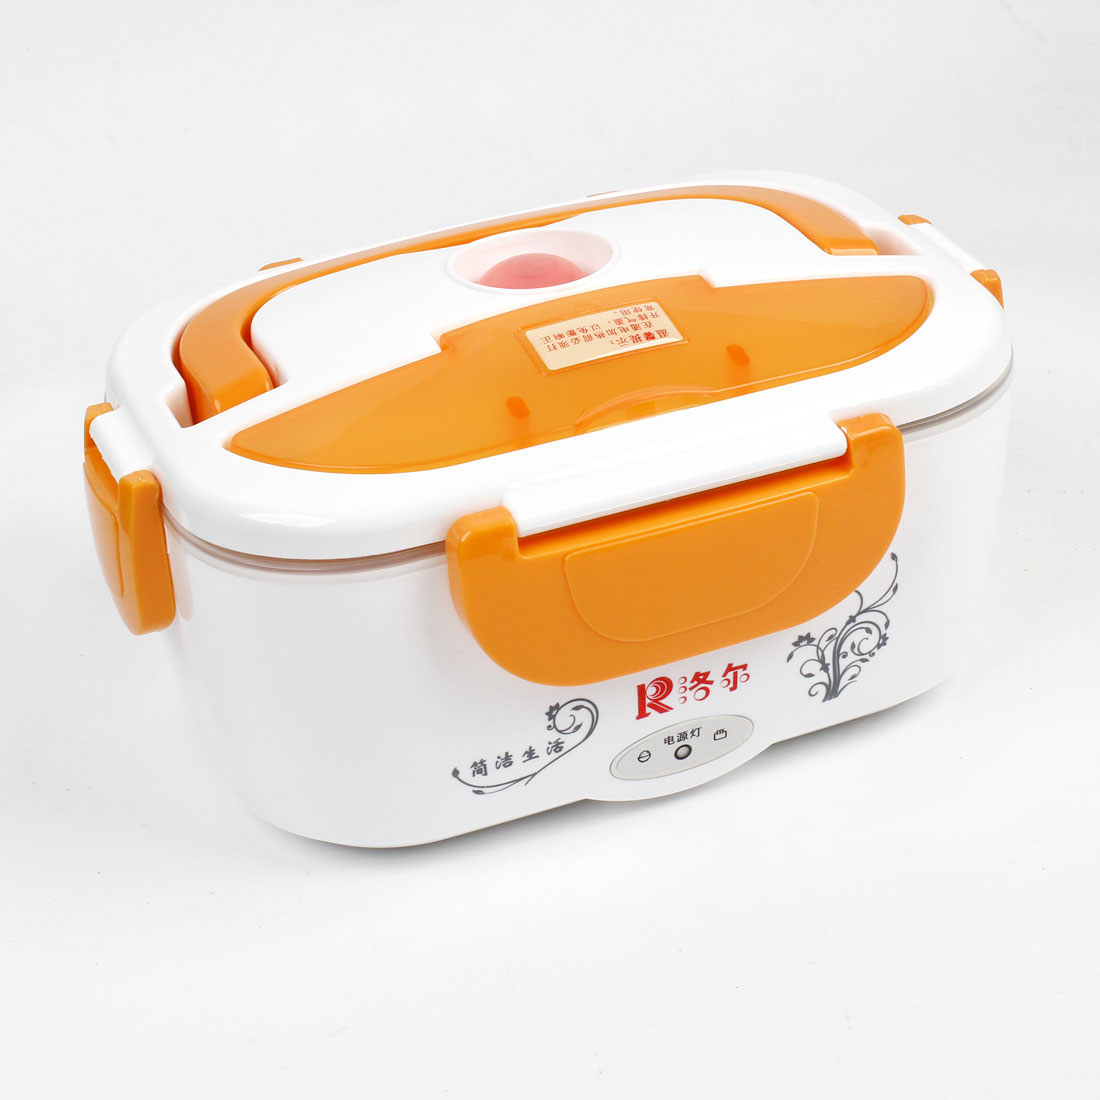 Orange White Portable Electric Heating Lunch Box Rice Dinner Bucket for Auto